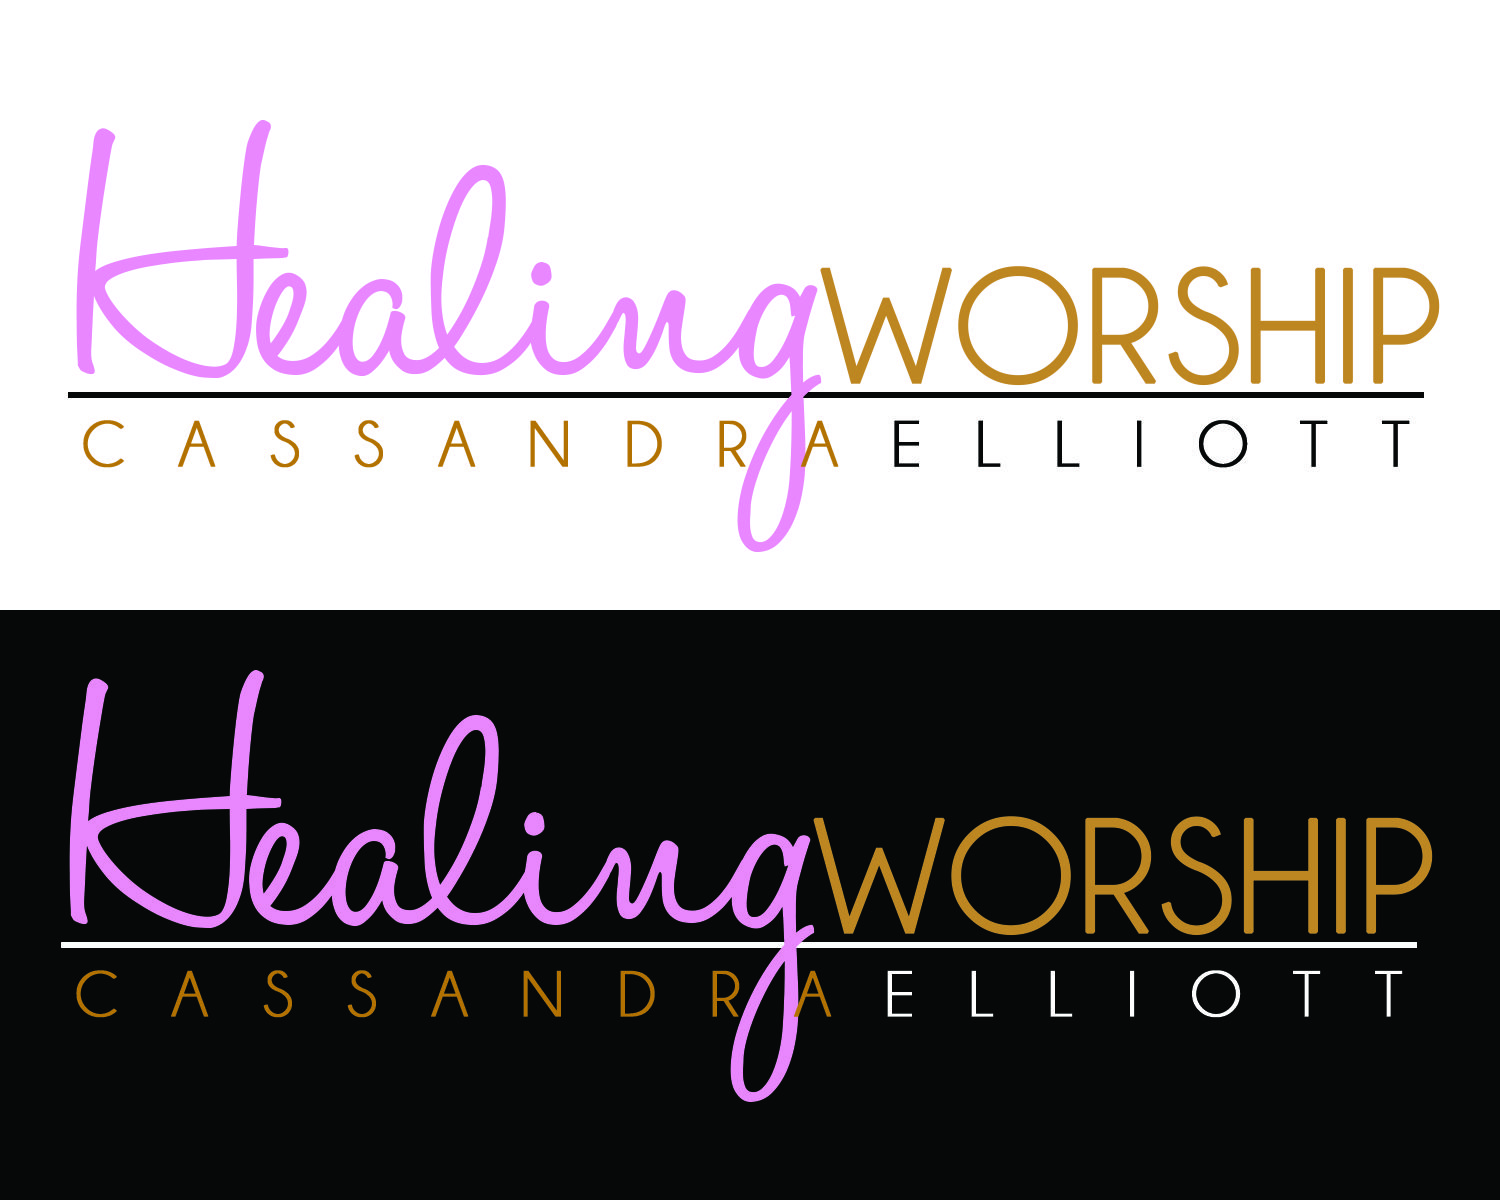 """The Gathering 2013-Theme """"Healing Worship""""  It will be an Atmosphere Activated Through Faith for Manifested Healing. December 13, 2013 8:00pm"""